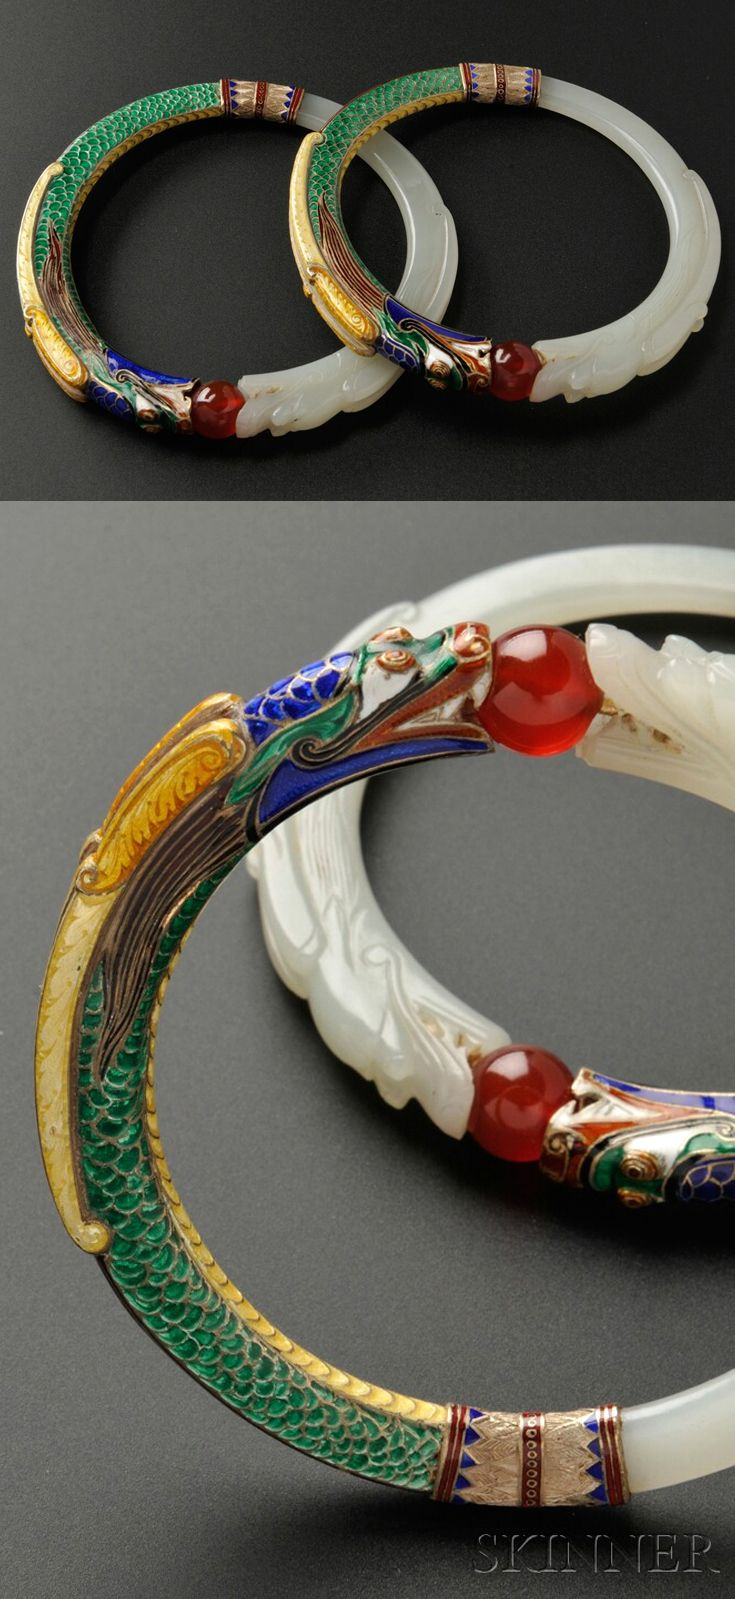 Bangles | Marie Zimmermann. Jade and enamel; each designed as carved jade and polychrome enamel dragons holding a red bead | These bracelets were included in a 1939 exhibition of her work in Santa Barbara, and she kept them throughout her life.